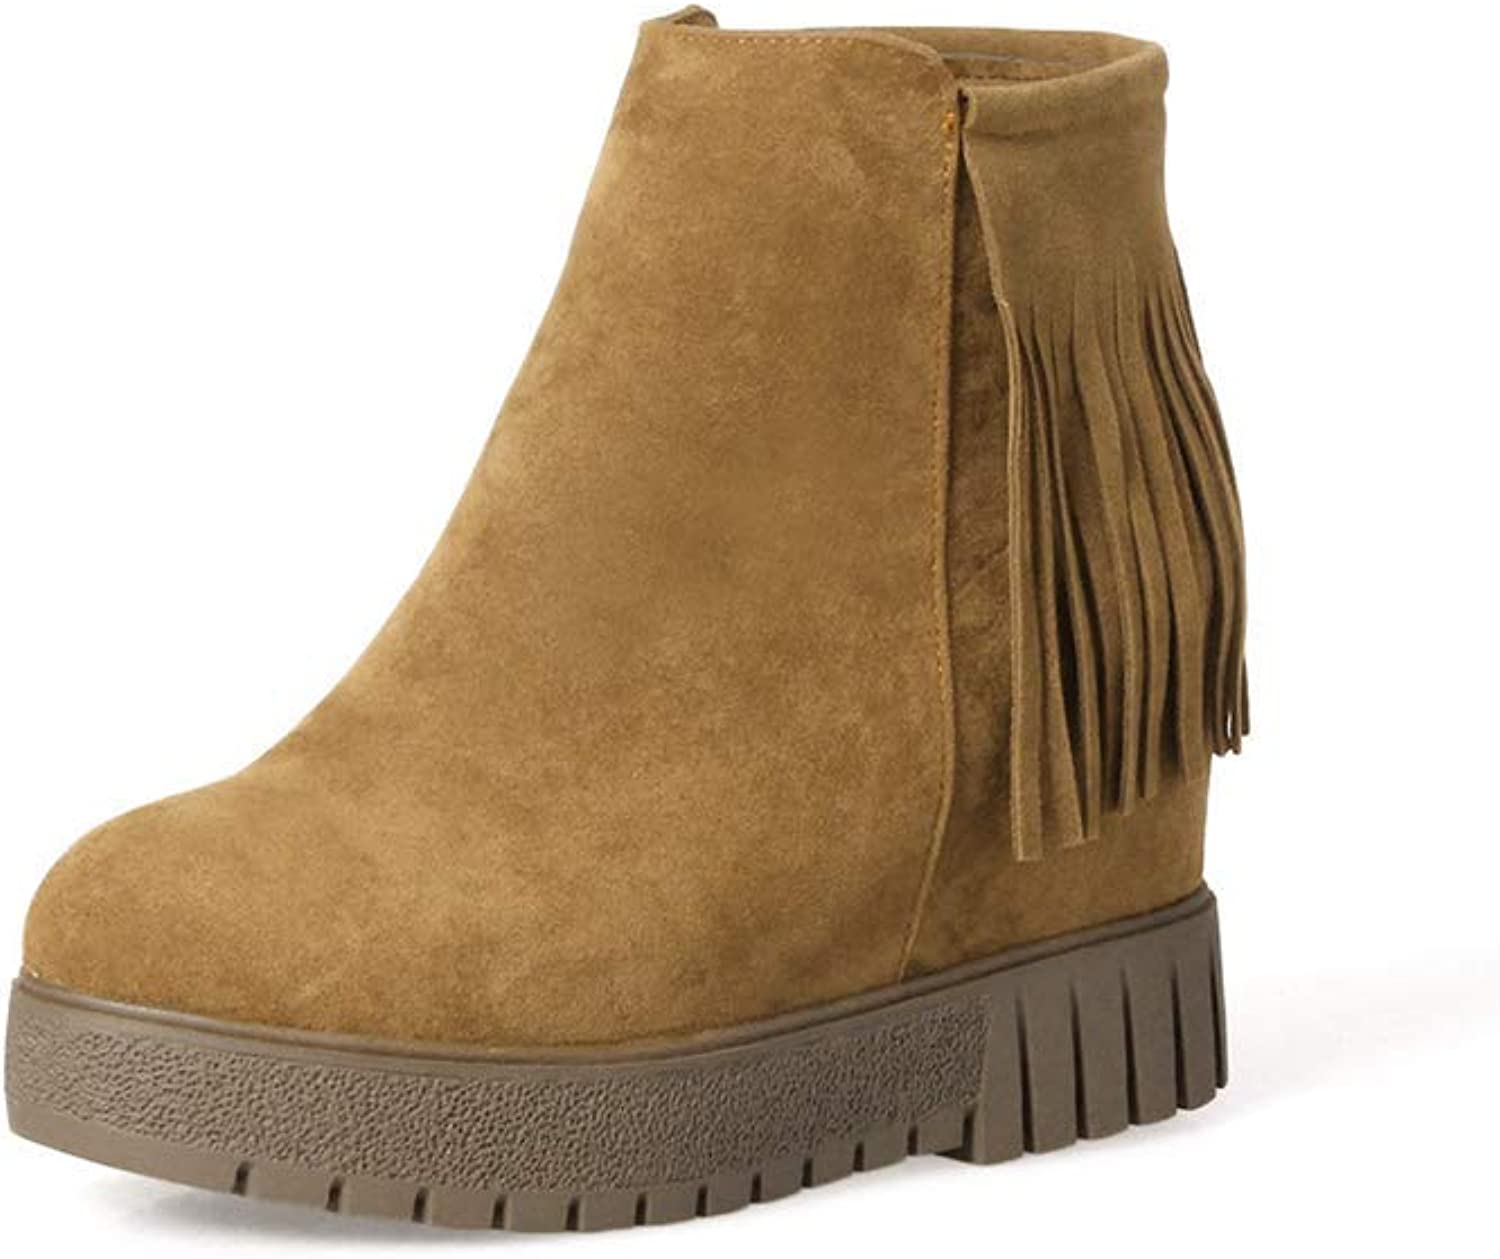 Women Hidden Heel Snow Boots Non-Slip Platform Casual Booties Lady Tassels Wedge Ankle Boots Round Toe